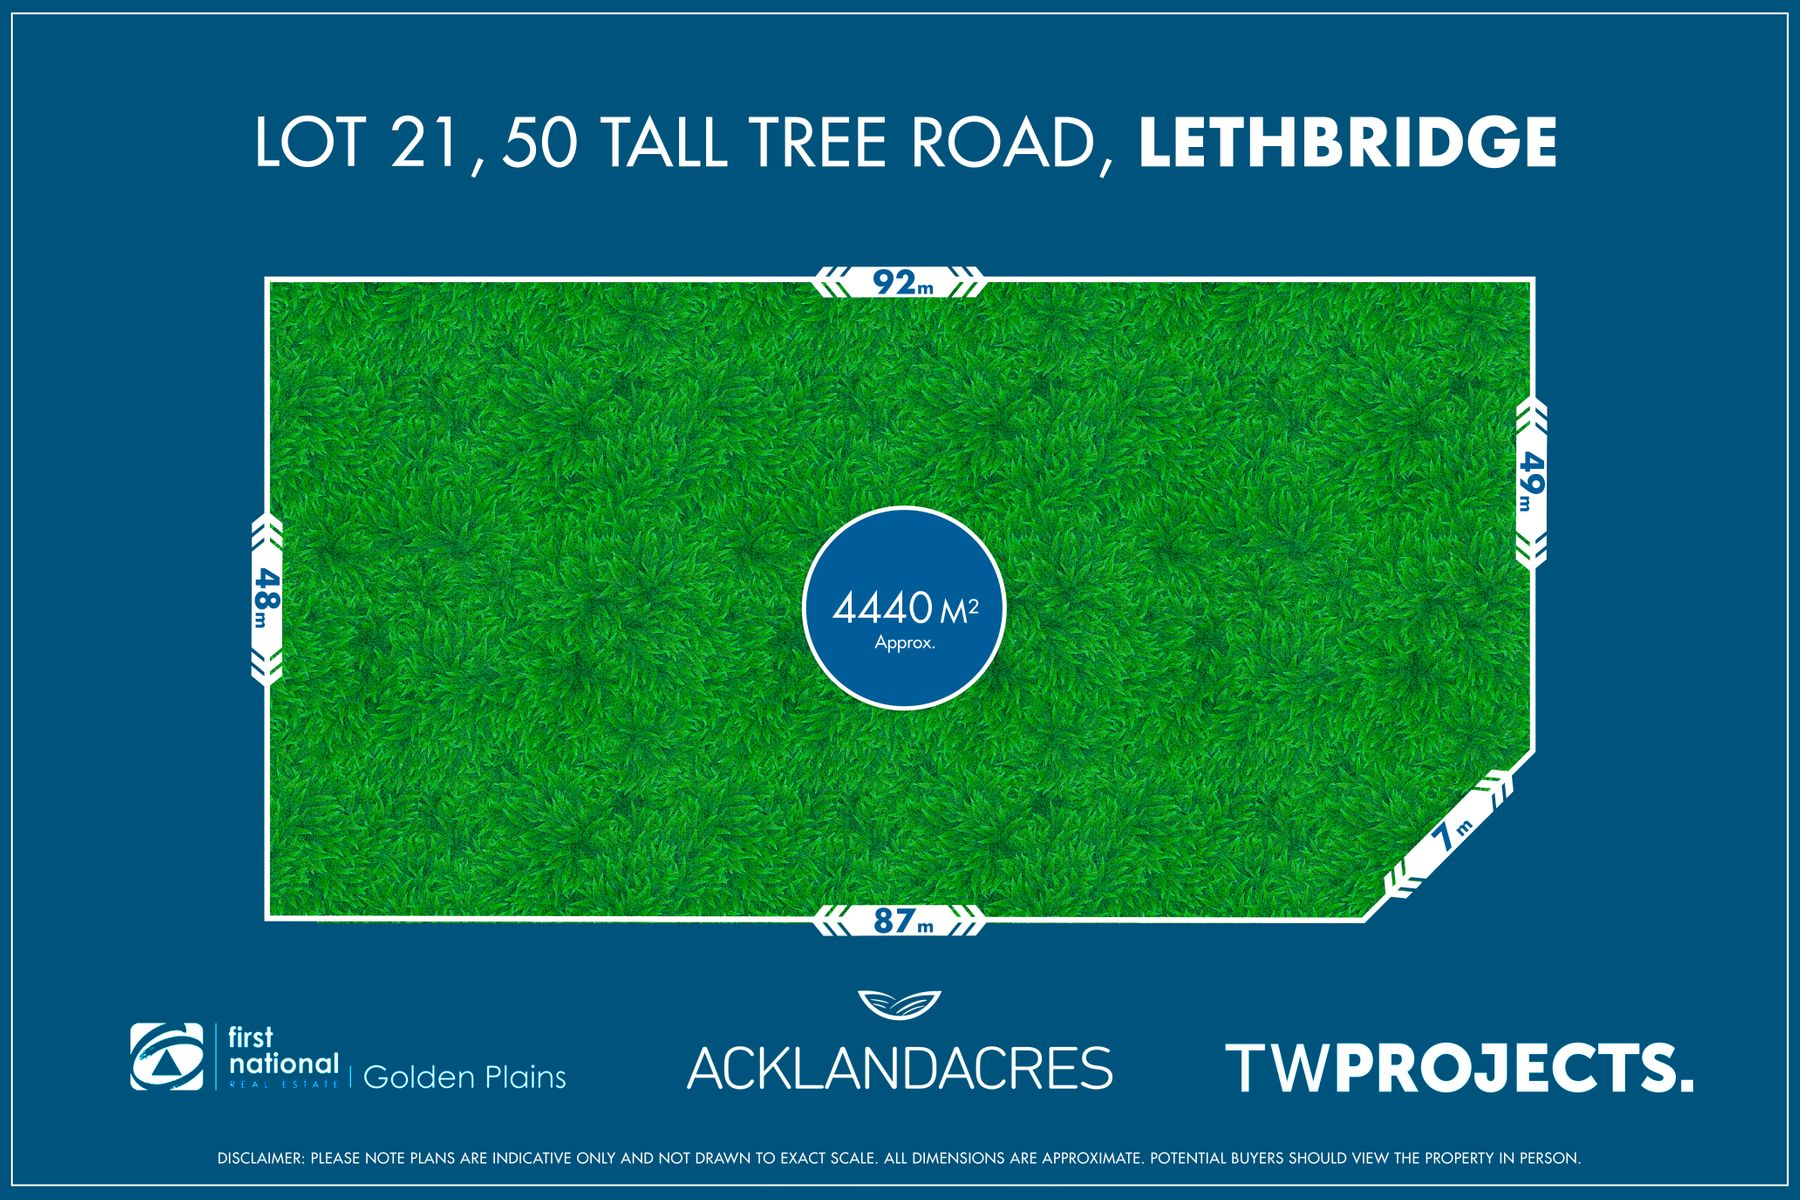 Lot 21, 50 Tall Tree Road, Lethbridge, VIC 3332